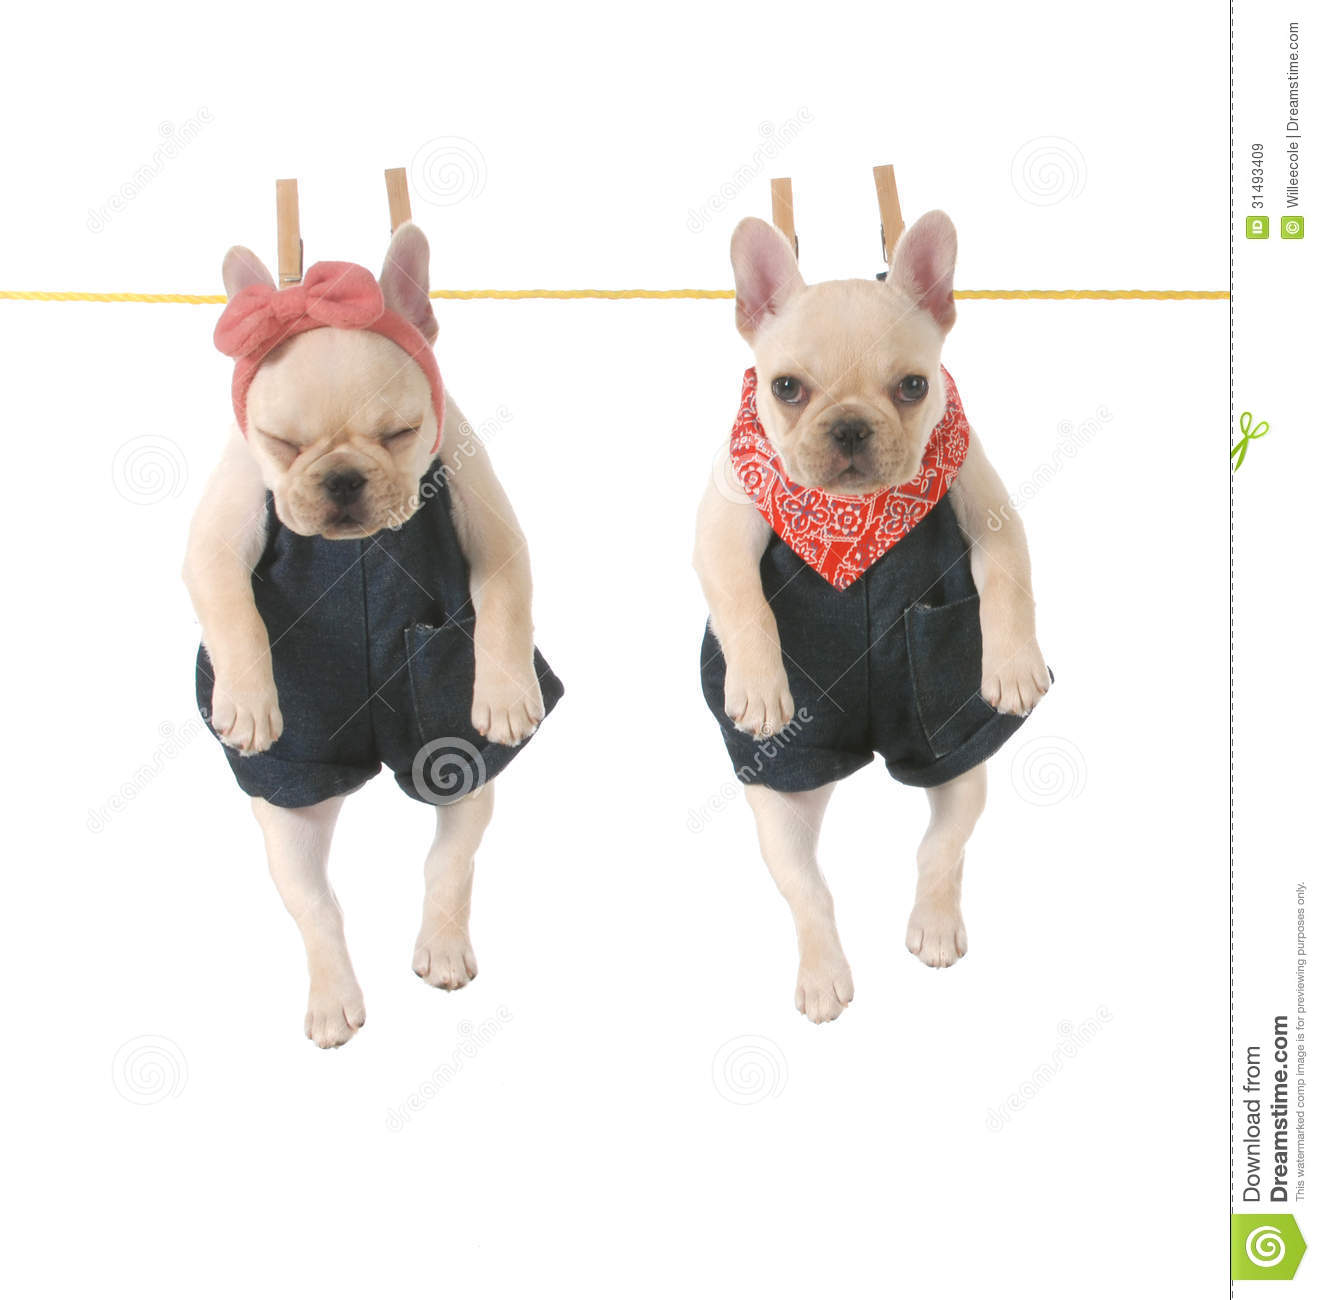 Cute french bulldog puppies hanging out on the clothes line isolated